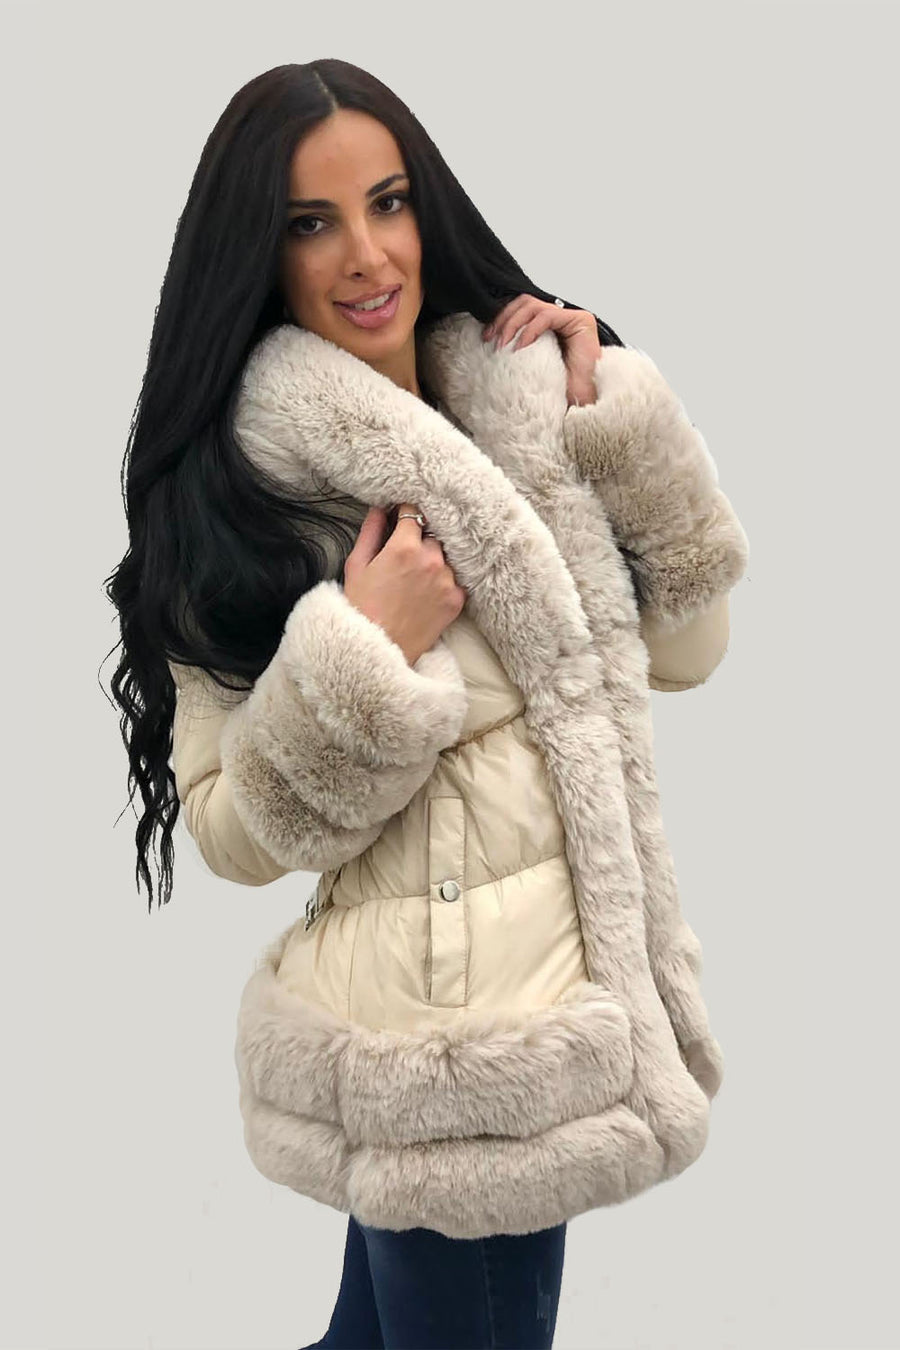 Apricot Faux Fur Trim Panel Jacket - Alyssa